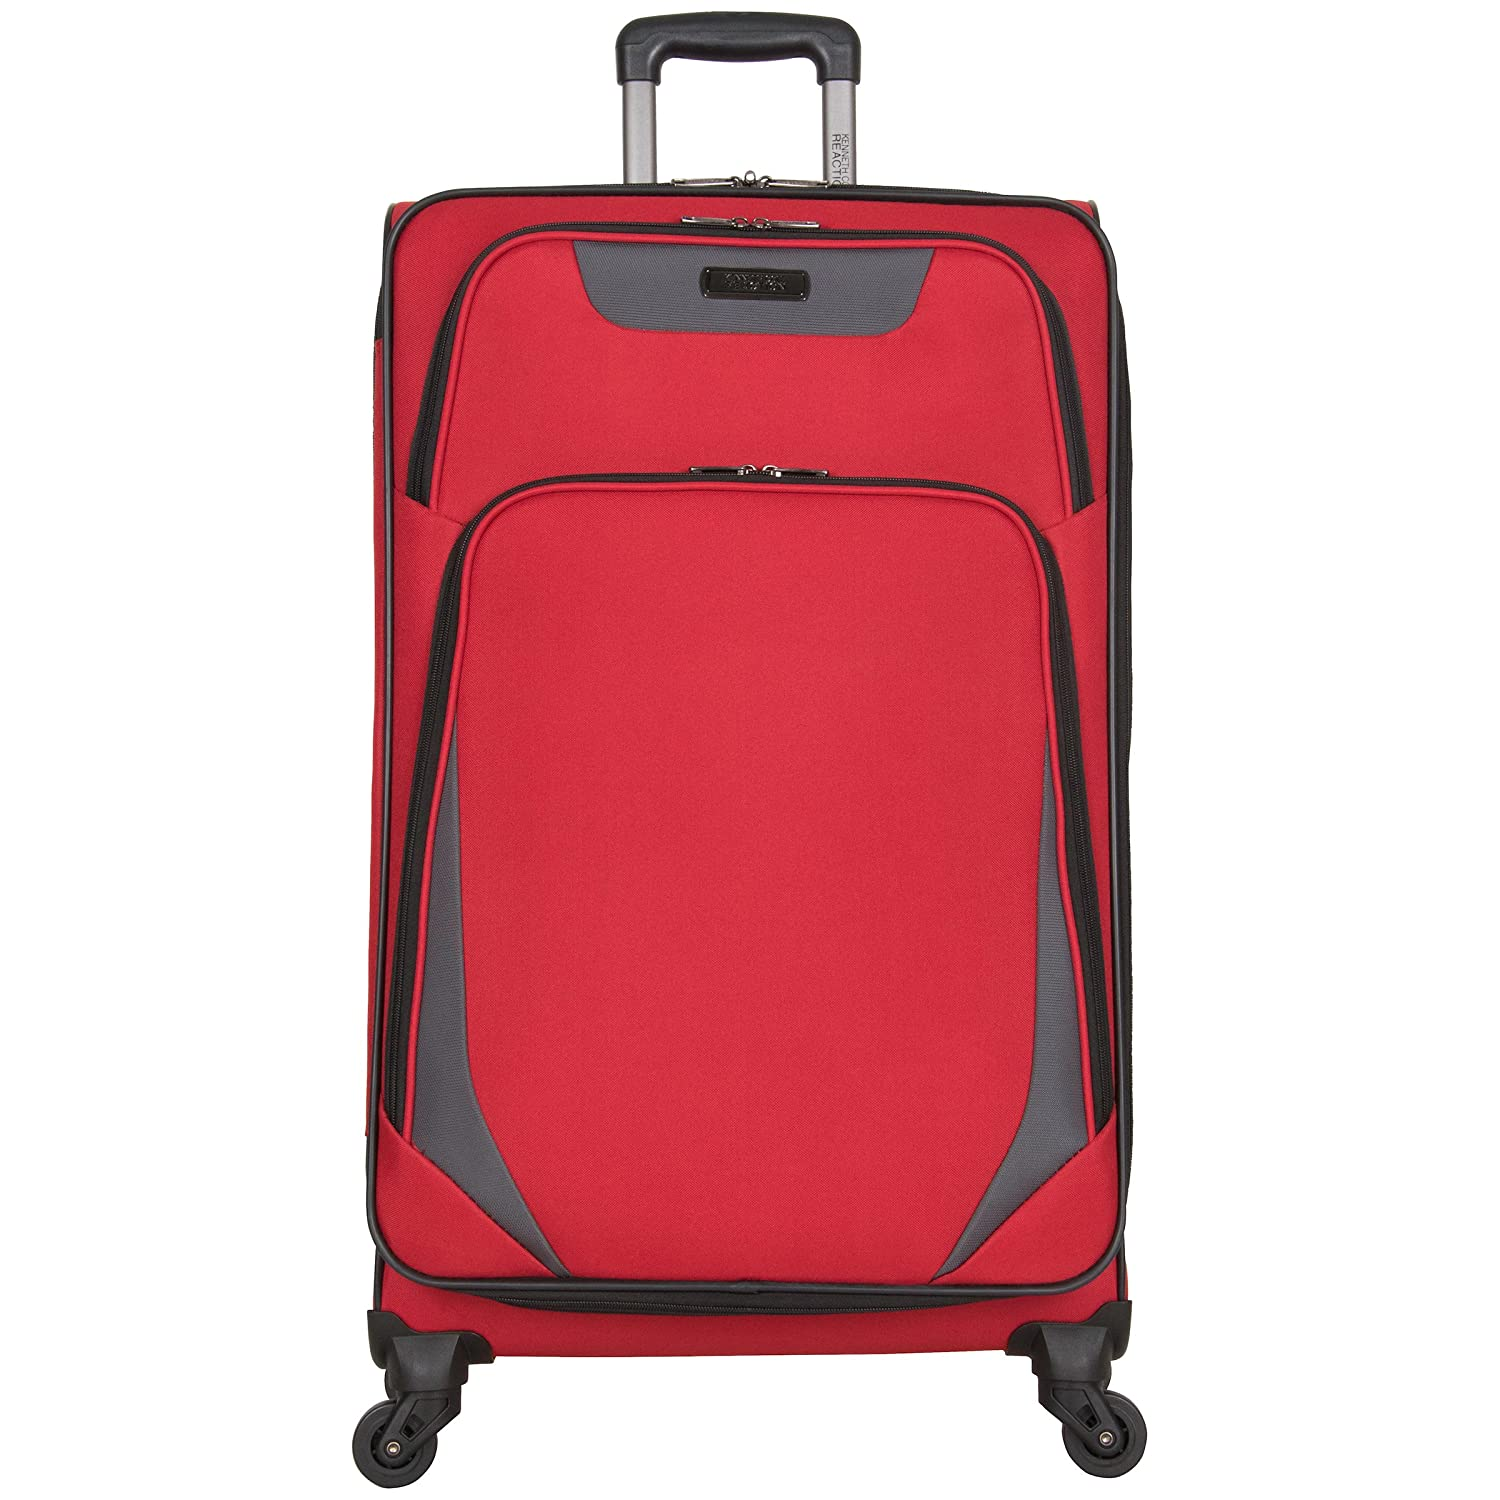 Kenneth Cole Reaction Going Places 28 600d Polyester Expandable 4-Wheel Spinner Checked Luggage, Black Heritage-Kenneth Cole Luggage 5709205